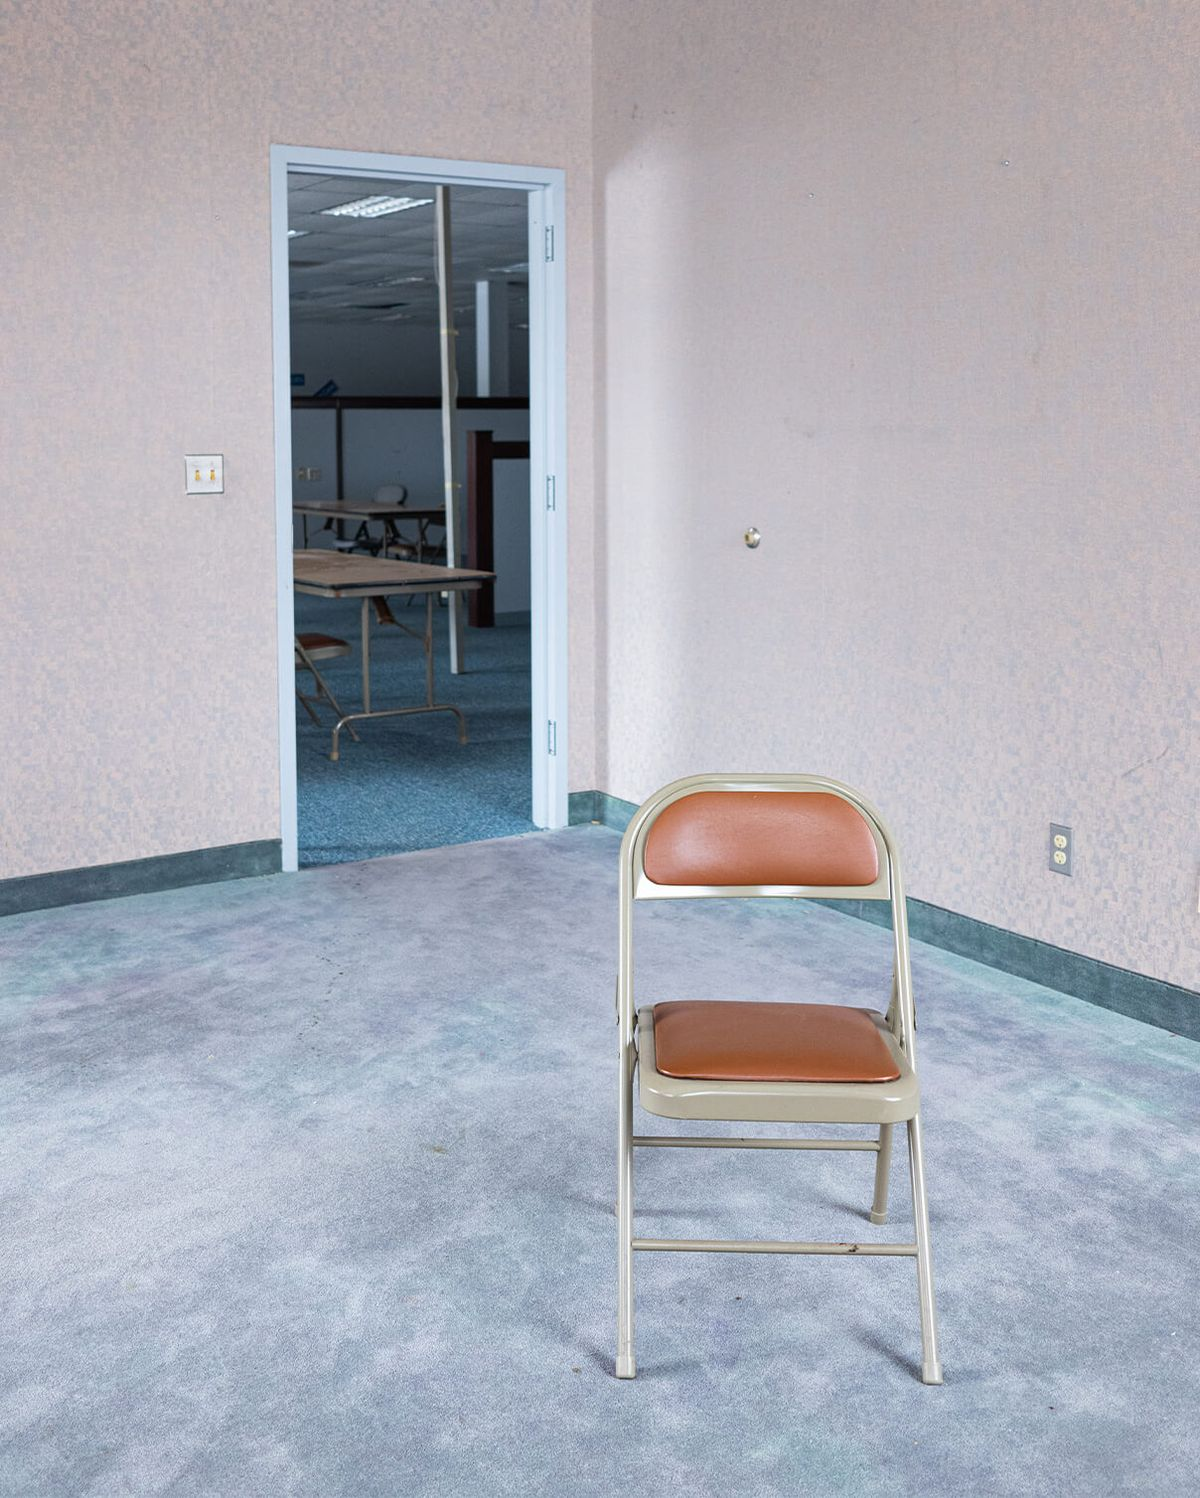 Views of the existing interior, carpeted floor, wall paper, and foldable office chairs